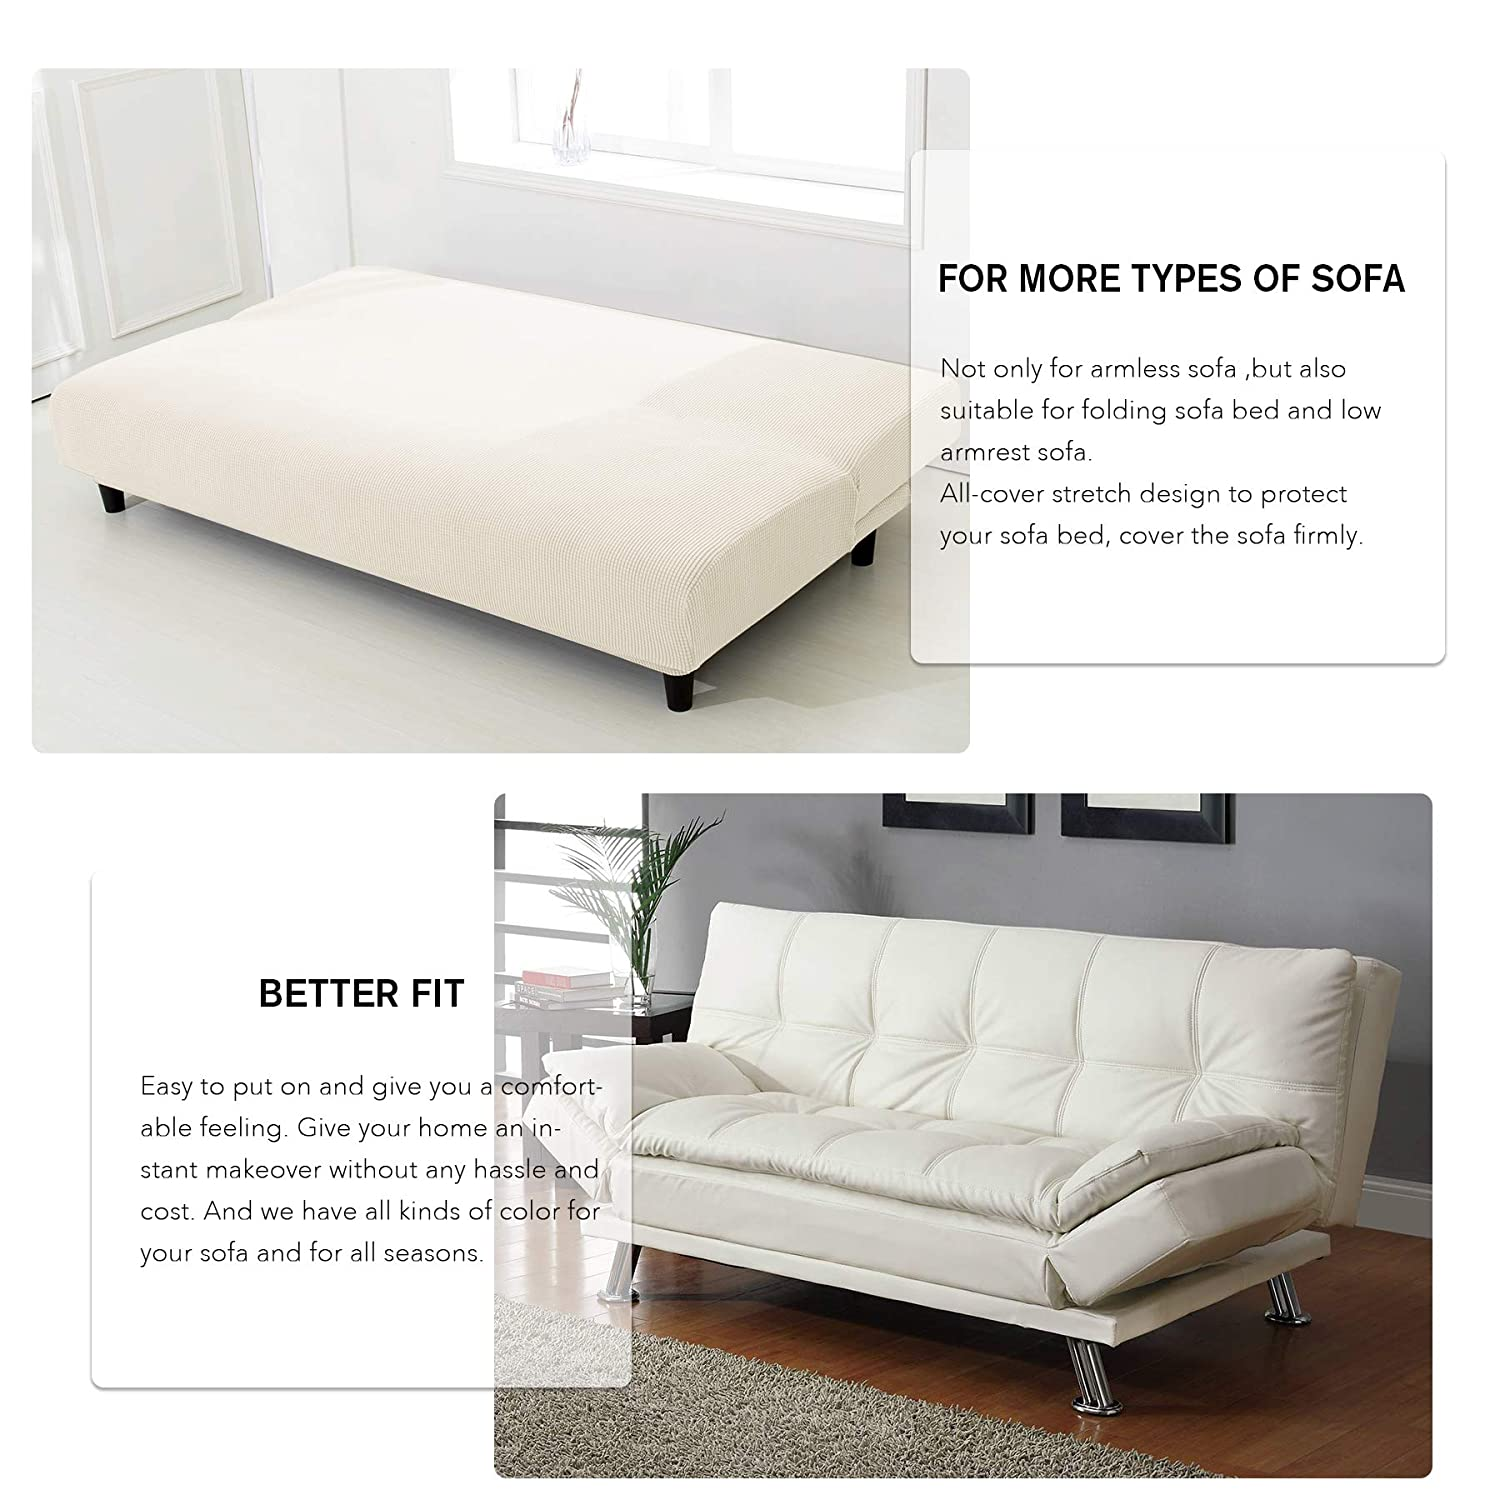 CHUN YI Armless Sofa Slipcover Elastic Fitted Full Folding Sofa Bed Cover Without Armrests,Removable Machine Washable Non-Slip Furniture Protector for Futon Couch Bench Sofa, Gray